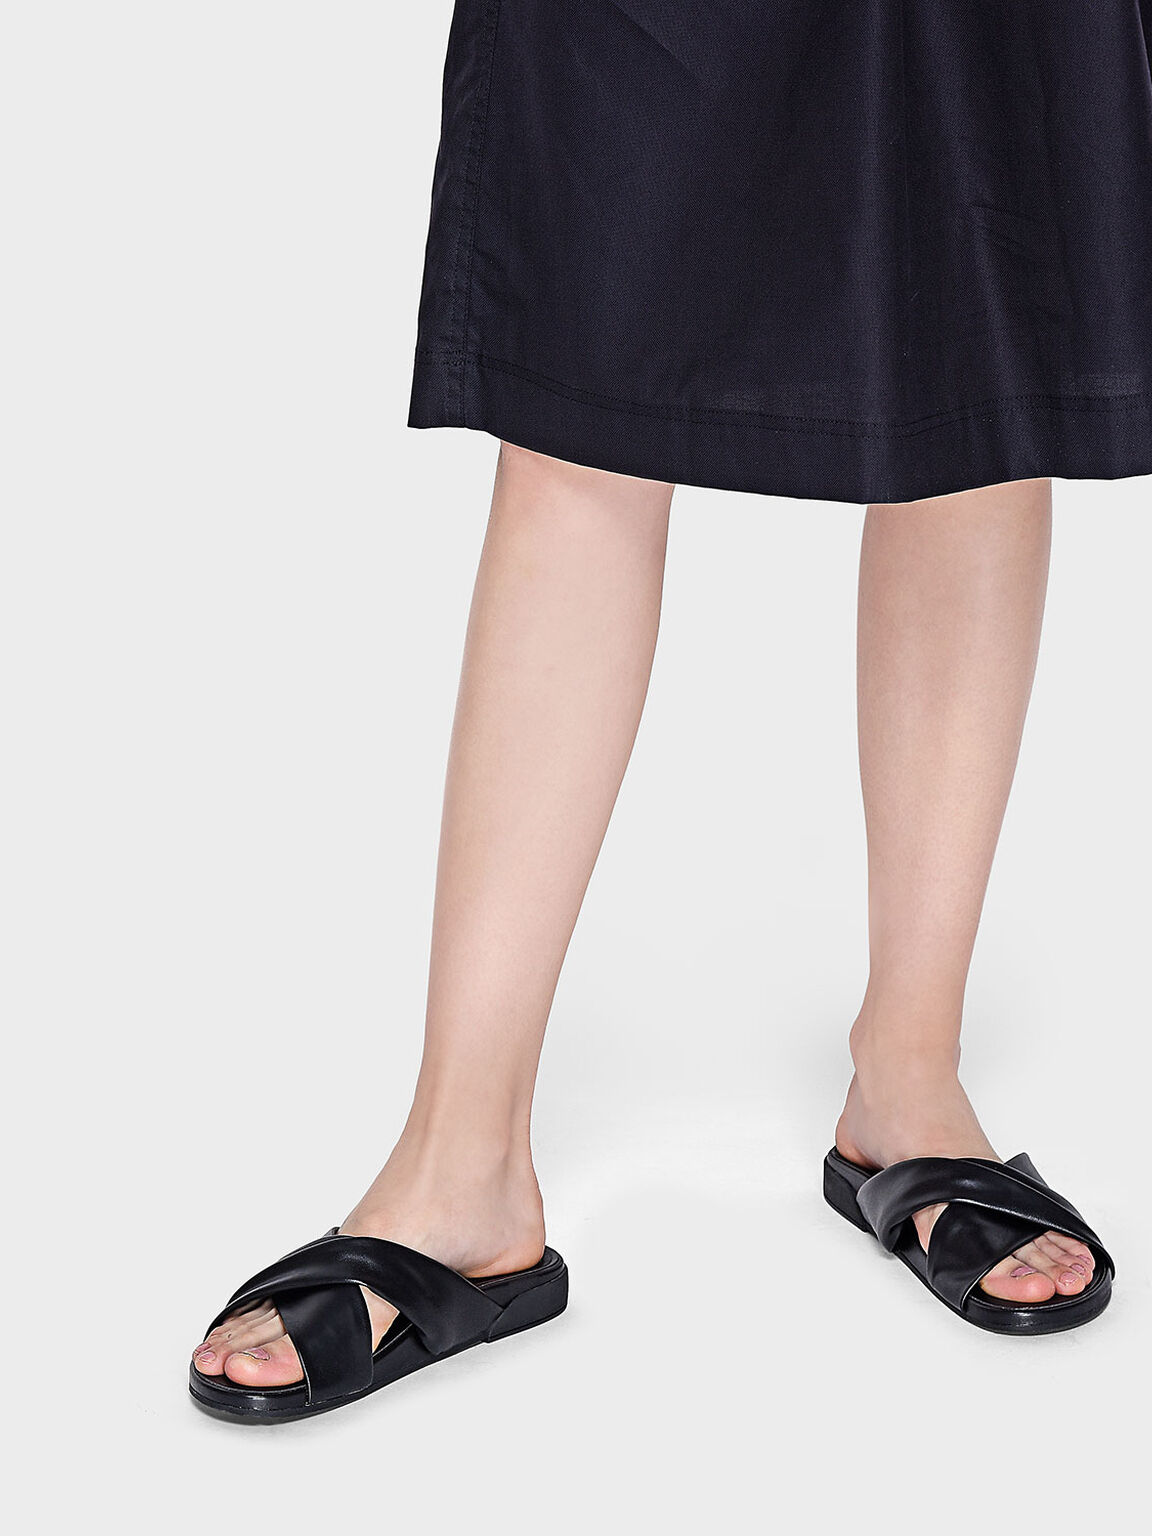 Twist Criss Cross Sliders, Black, hi-res